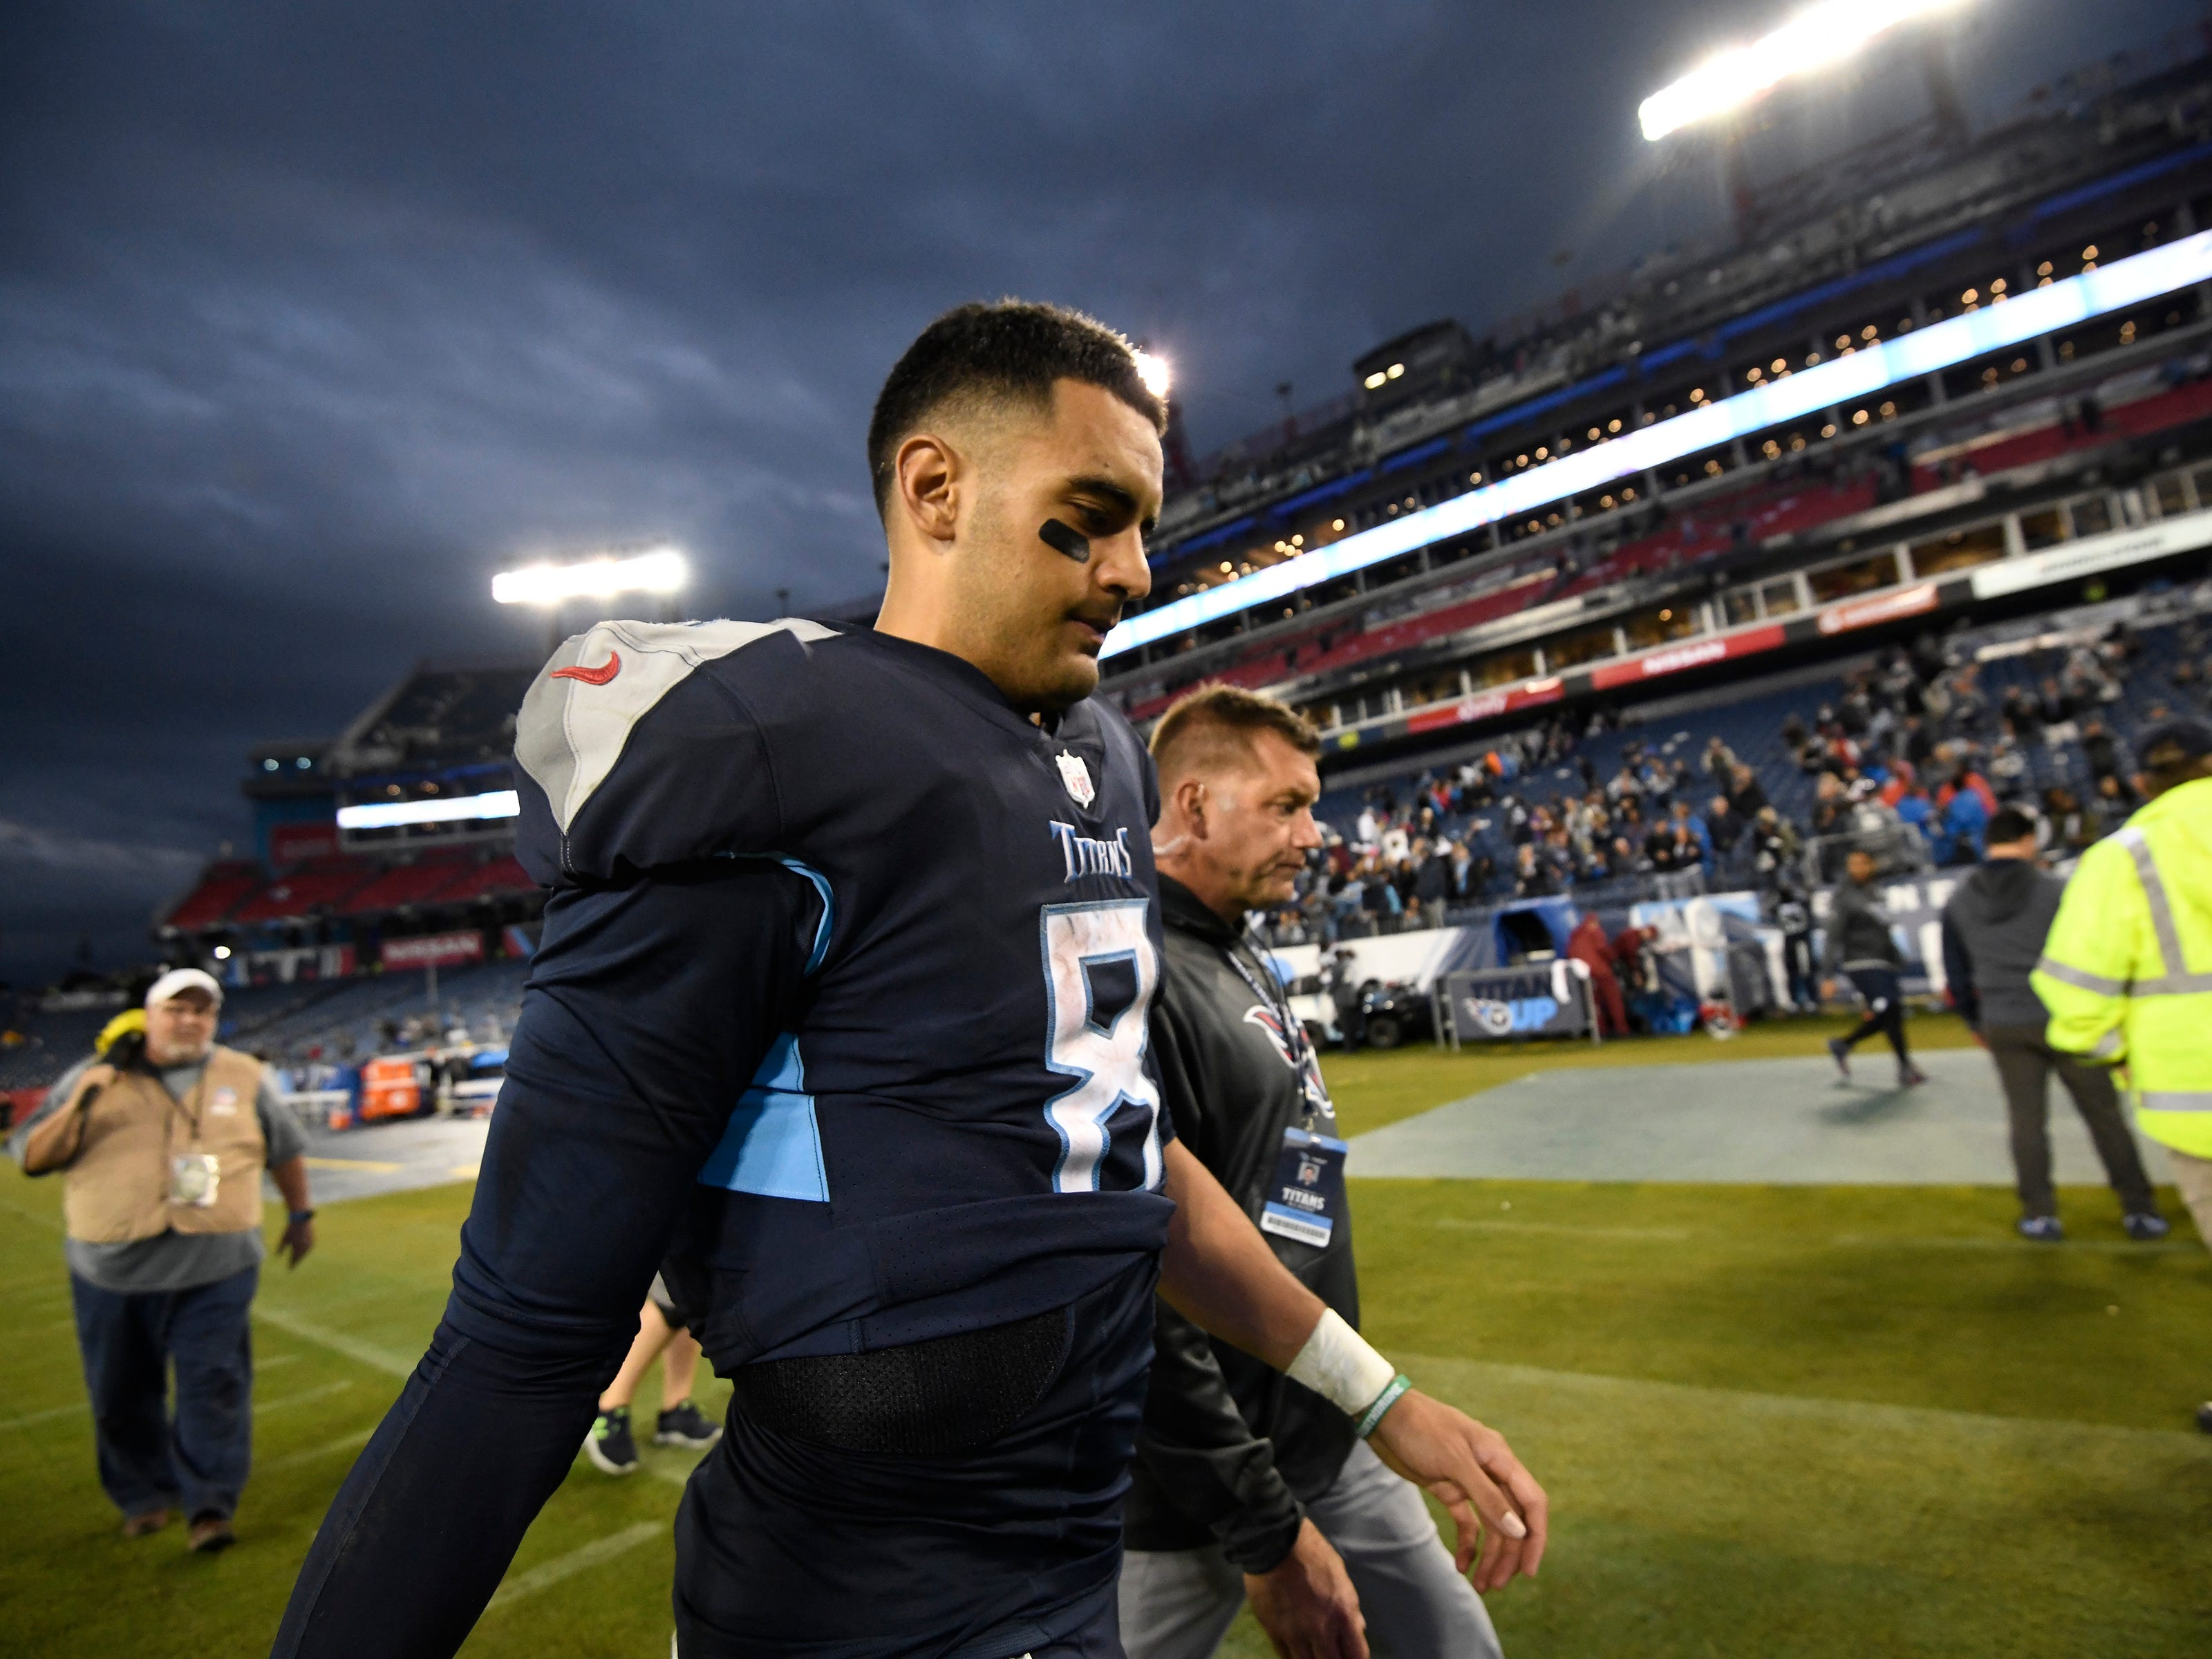 Titans quarterback Marcus Mariota (8) walks off the field after the team's 21-0 loss to the Ravens at Nissan Stadium Sunday, Oct. 14, 2018, in Nashville, Tenn.